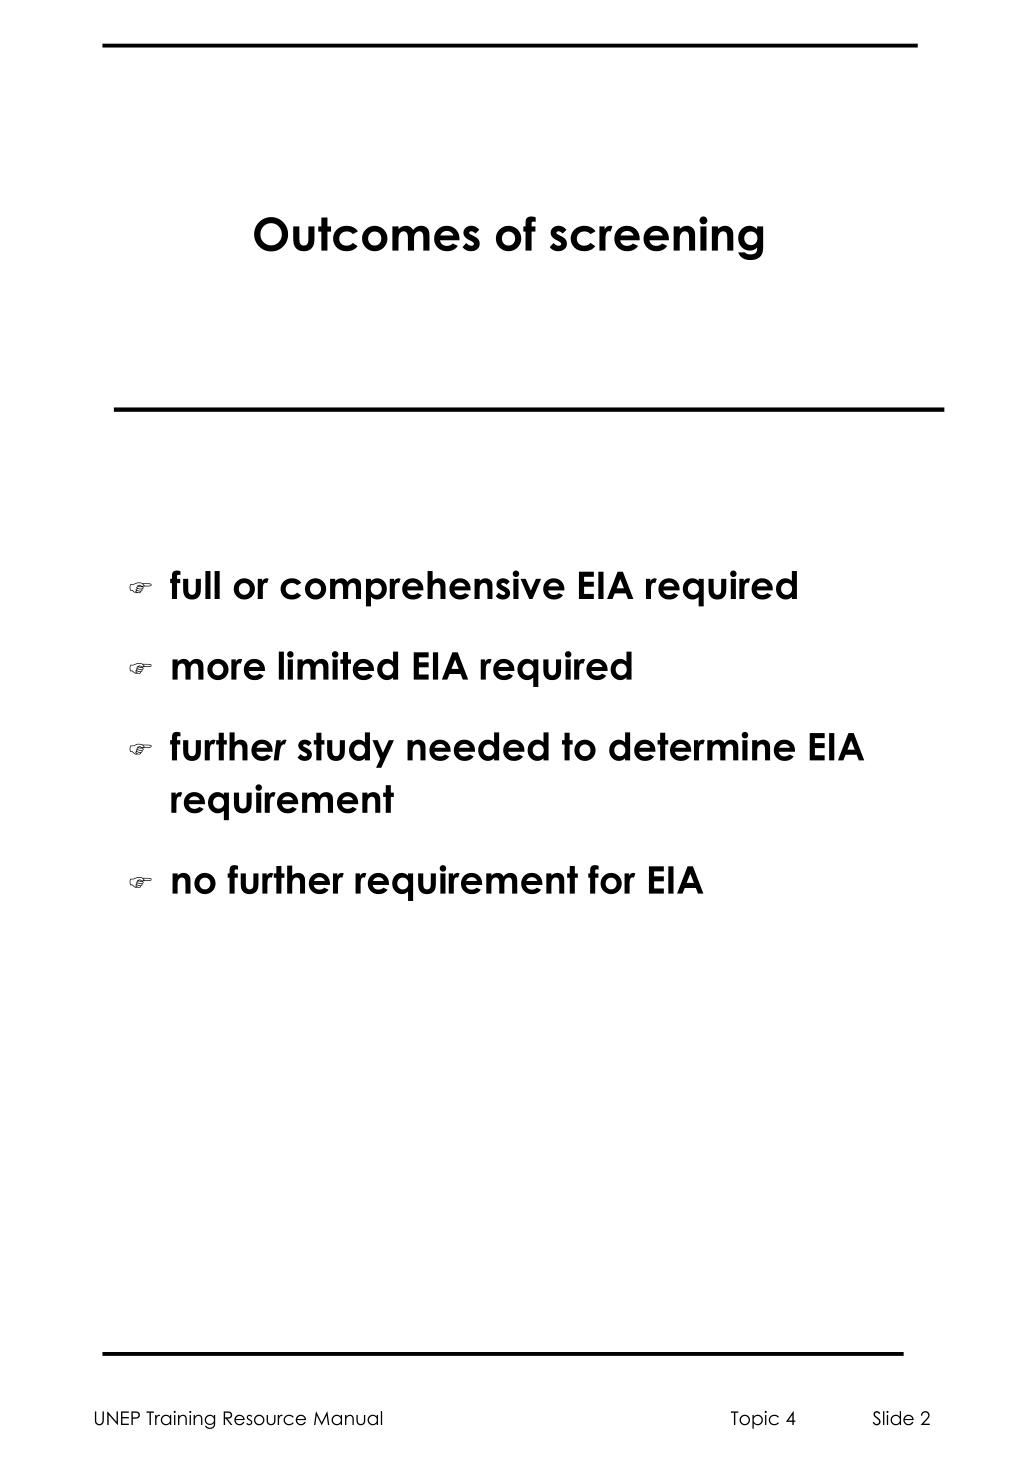 Outcomes of screening